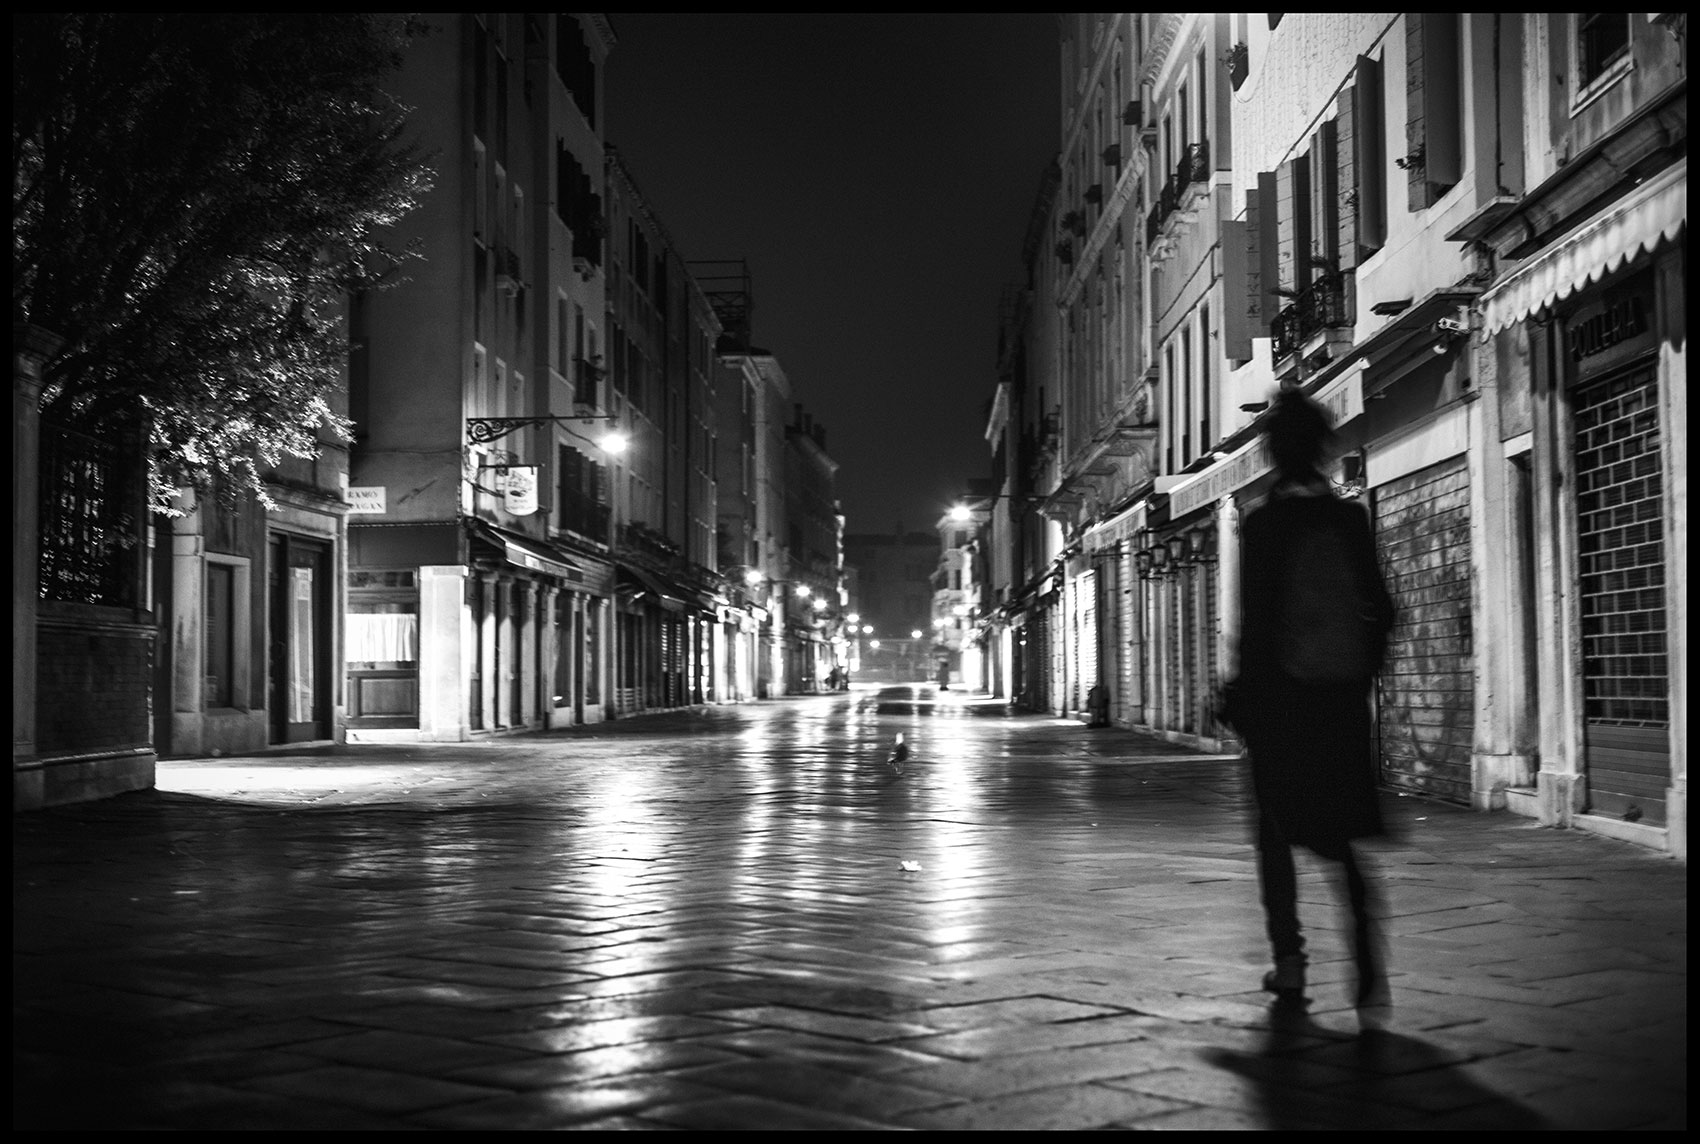 Souls at Night 3 - Street Photography | Stefano Paradiso - Photographer